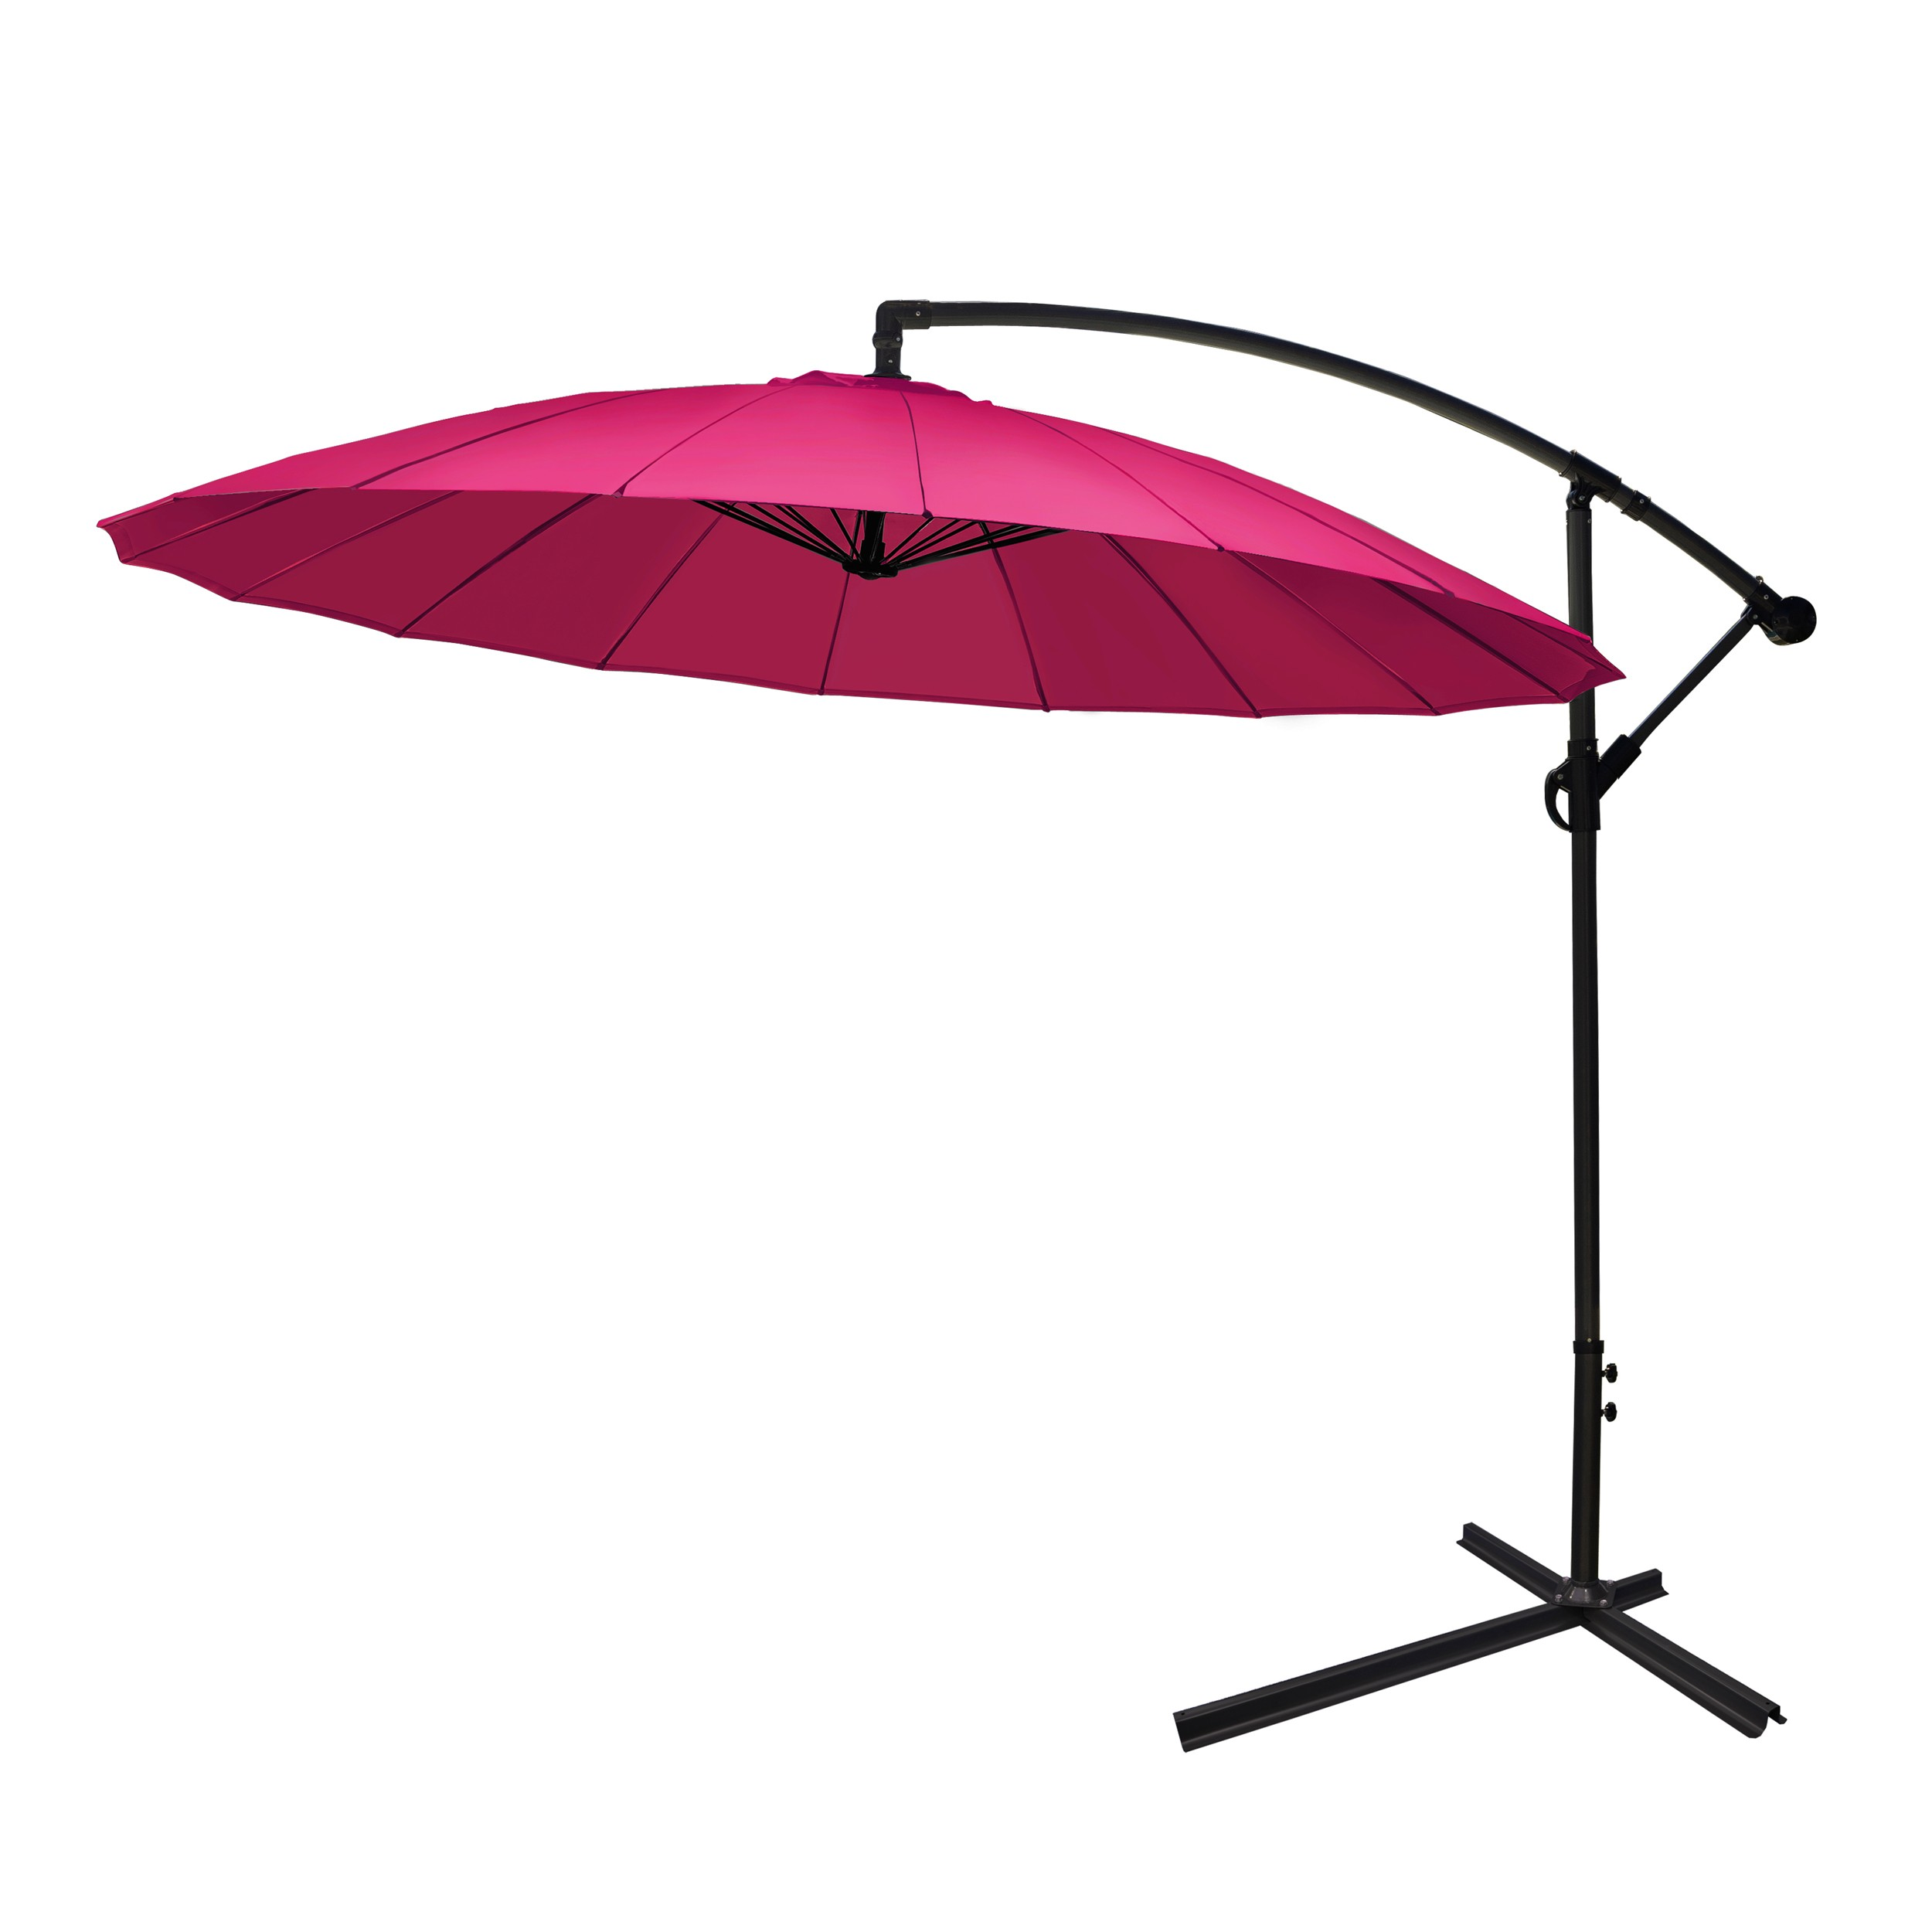 parasole deporte simple parasol dport inclinable en aluminium taupe with parasole deporte. Black Bedroom Furniture Sets. Home Design Ideas